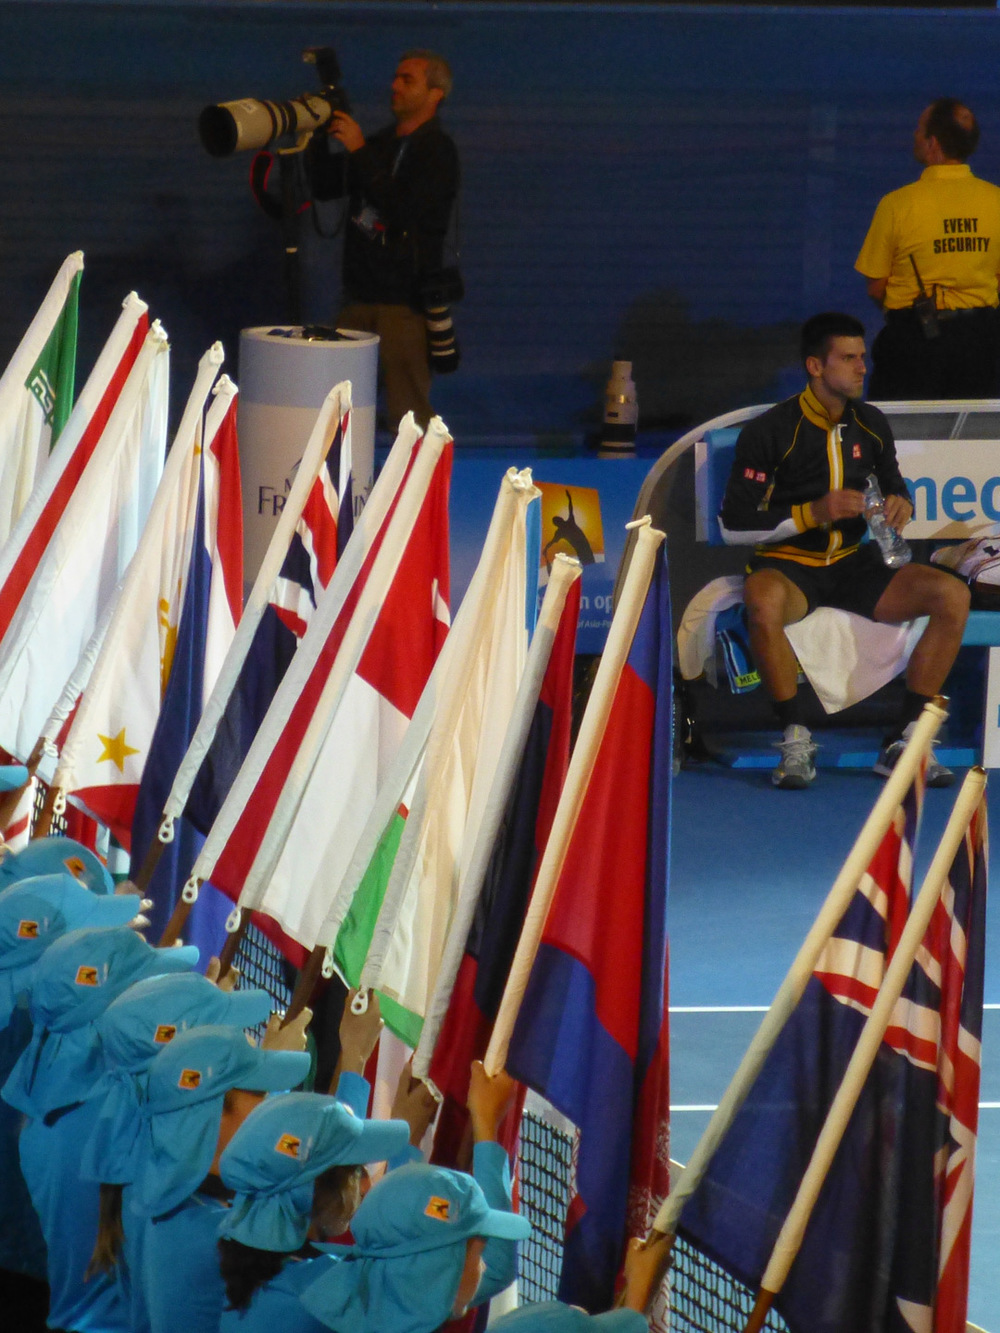 The parade of flags representing the players participating throughout the tournament